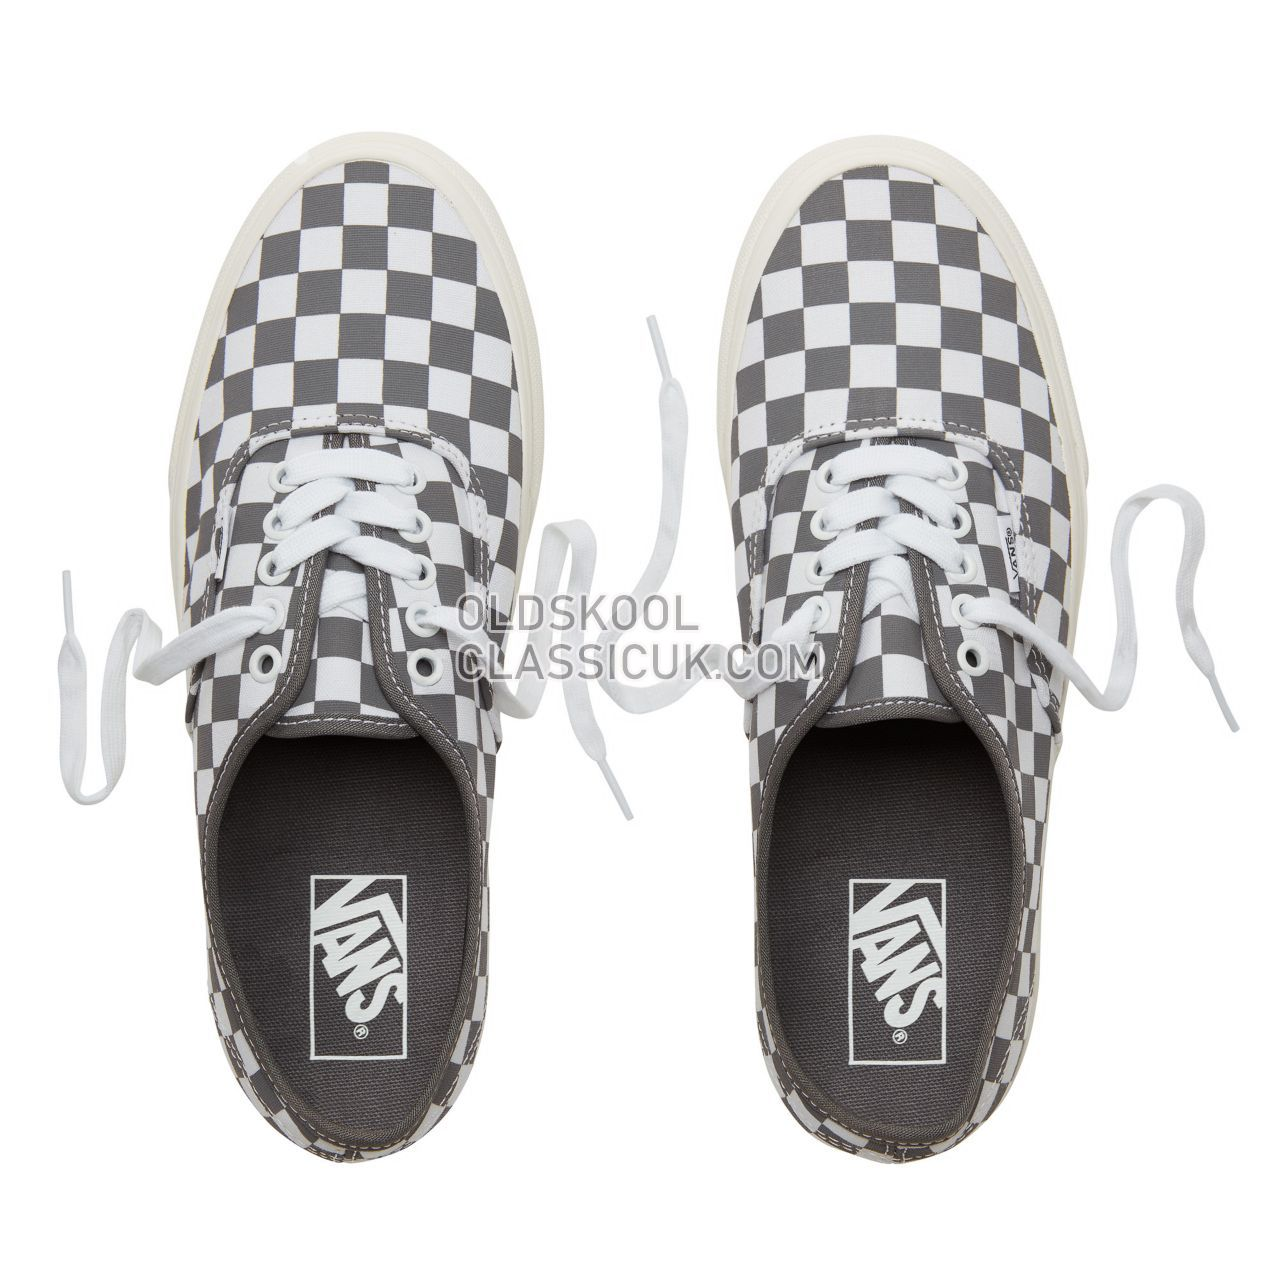 Vans Checkerboard Authentic Sneakers Mens (Checkerboard) Pewter/Marshmallow VA38EMU53 Shoes